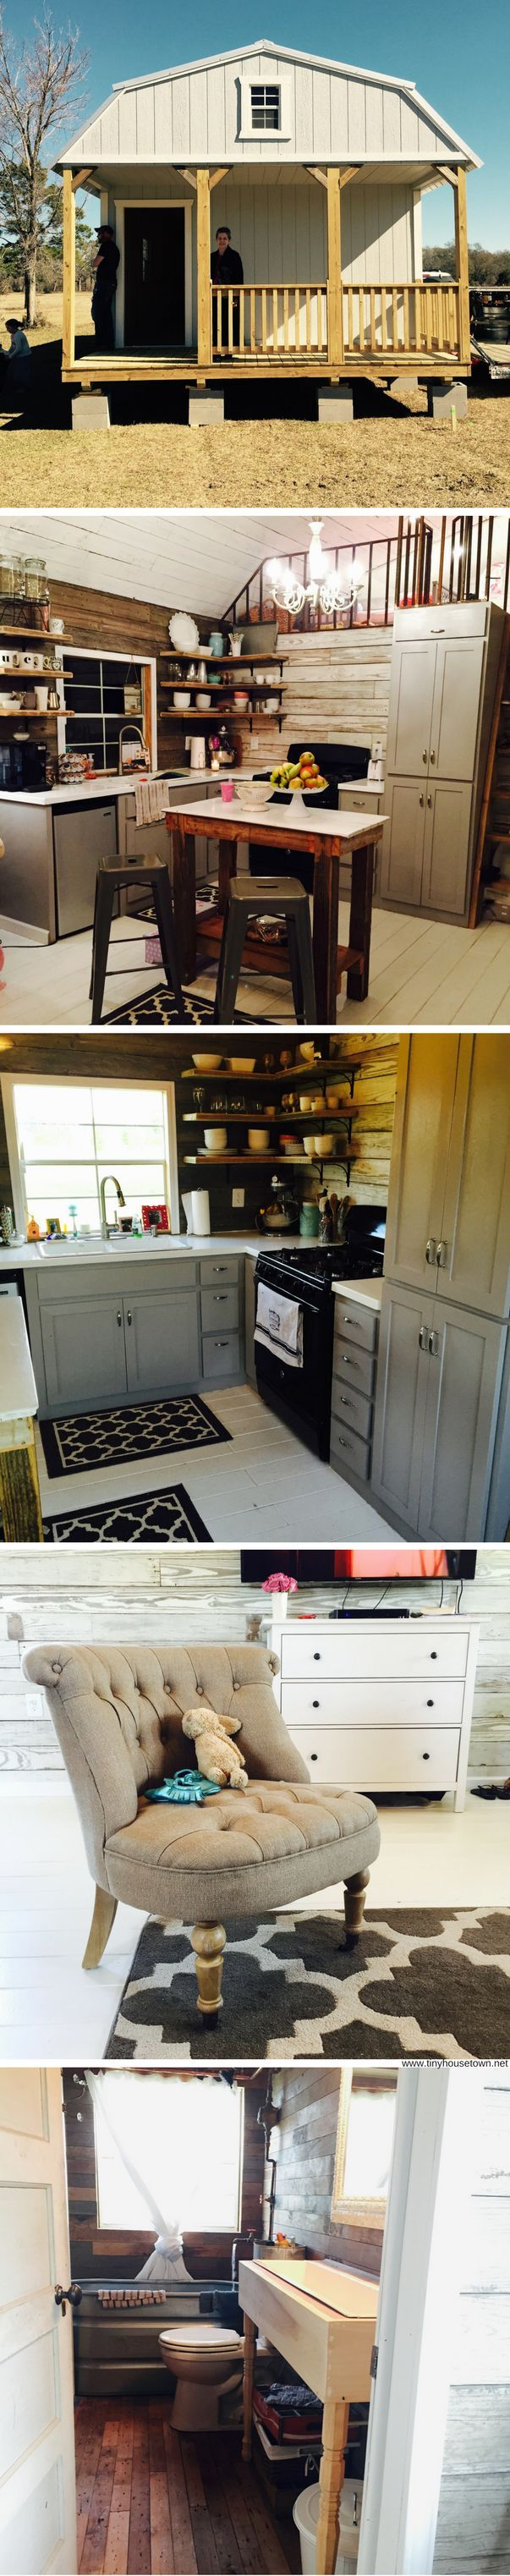 A 500 sq ft family home for sale in Texas Tiny House Pinterest